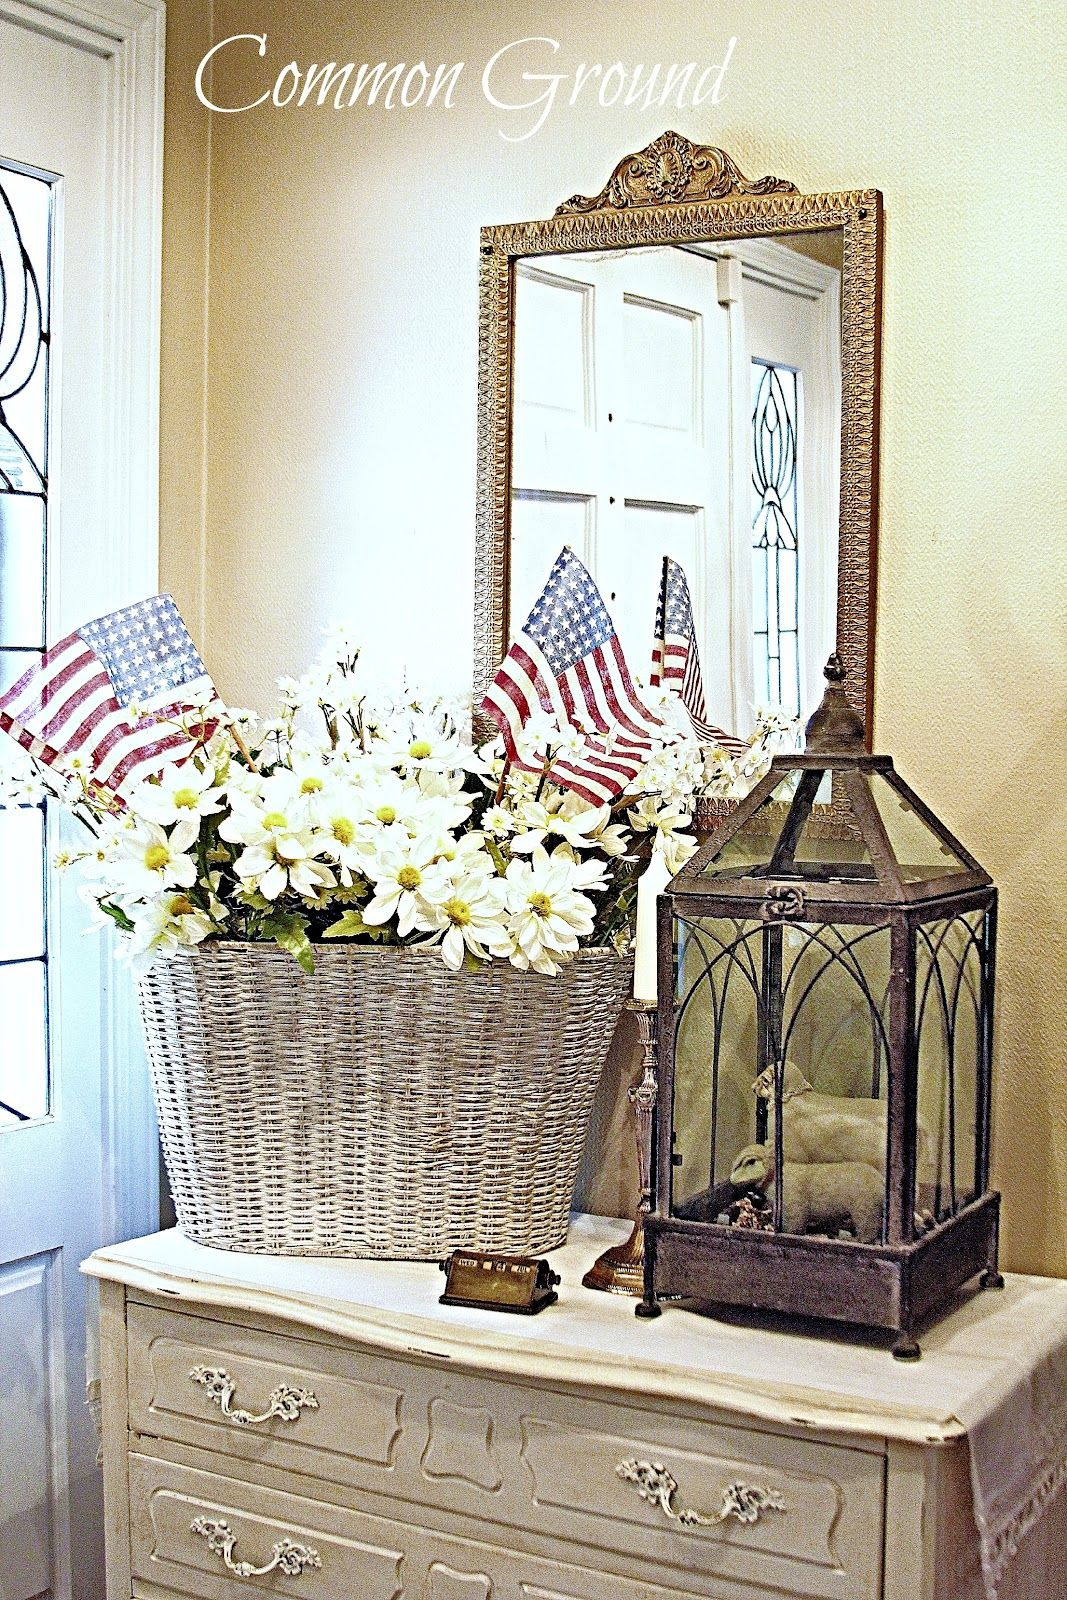 Patriotic entryway vignette stars and stripes holidays pinterest